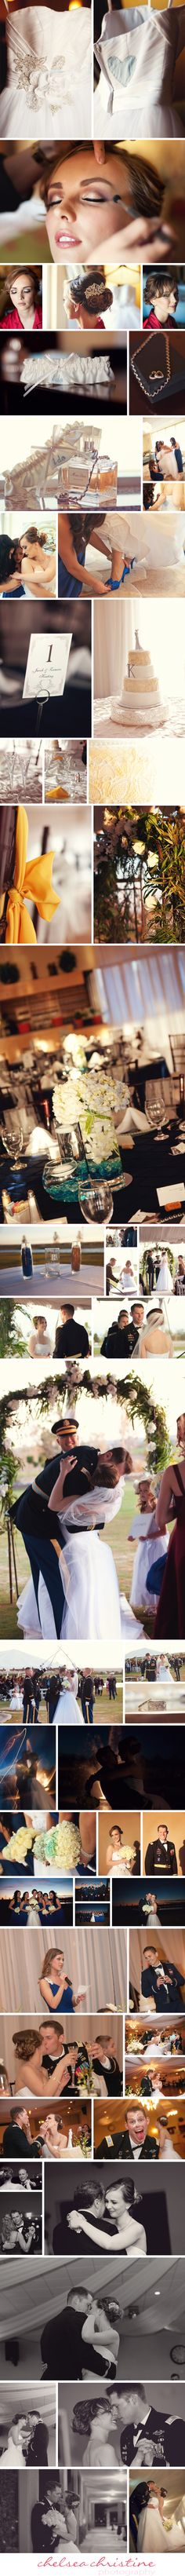 El Paso Wedding Photographer | Southern IL Wedding Photographer | Chelsea Christine Photography |